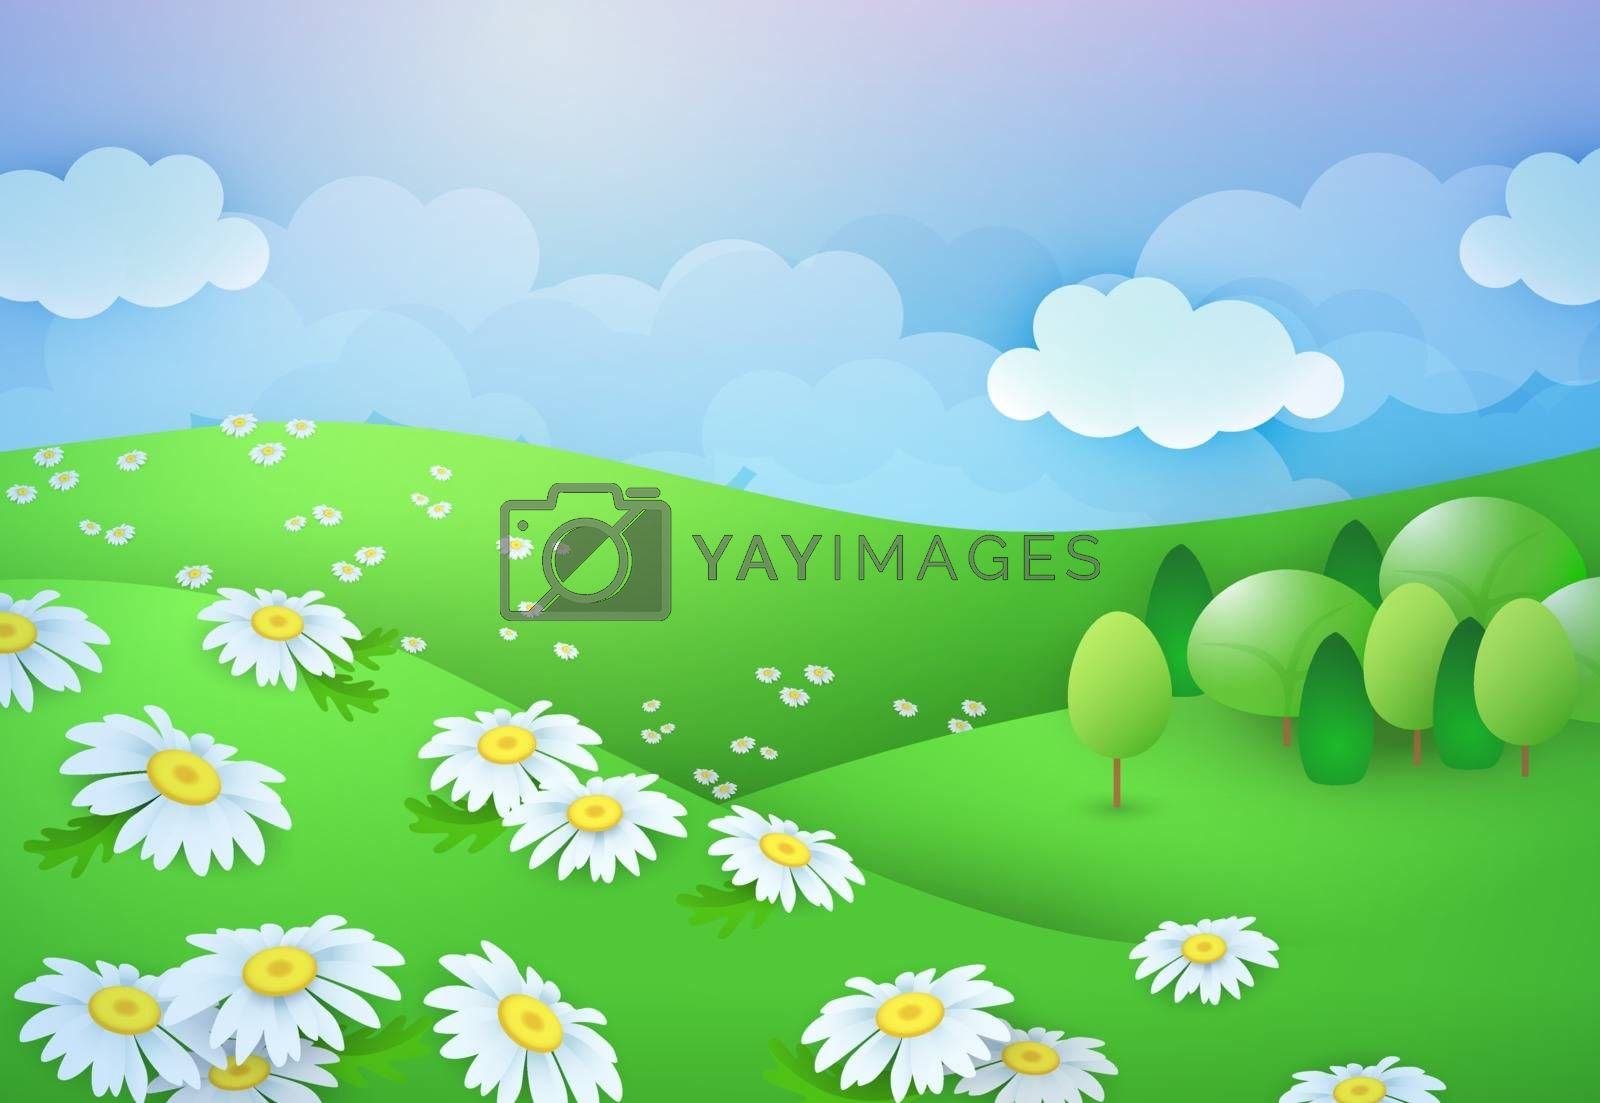 Summer daisy field. Clouds on sky, trees on hill. Can be used for topics like nature, landscape, ecology